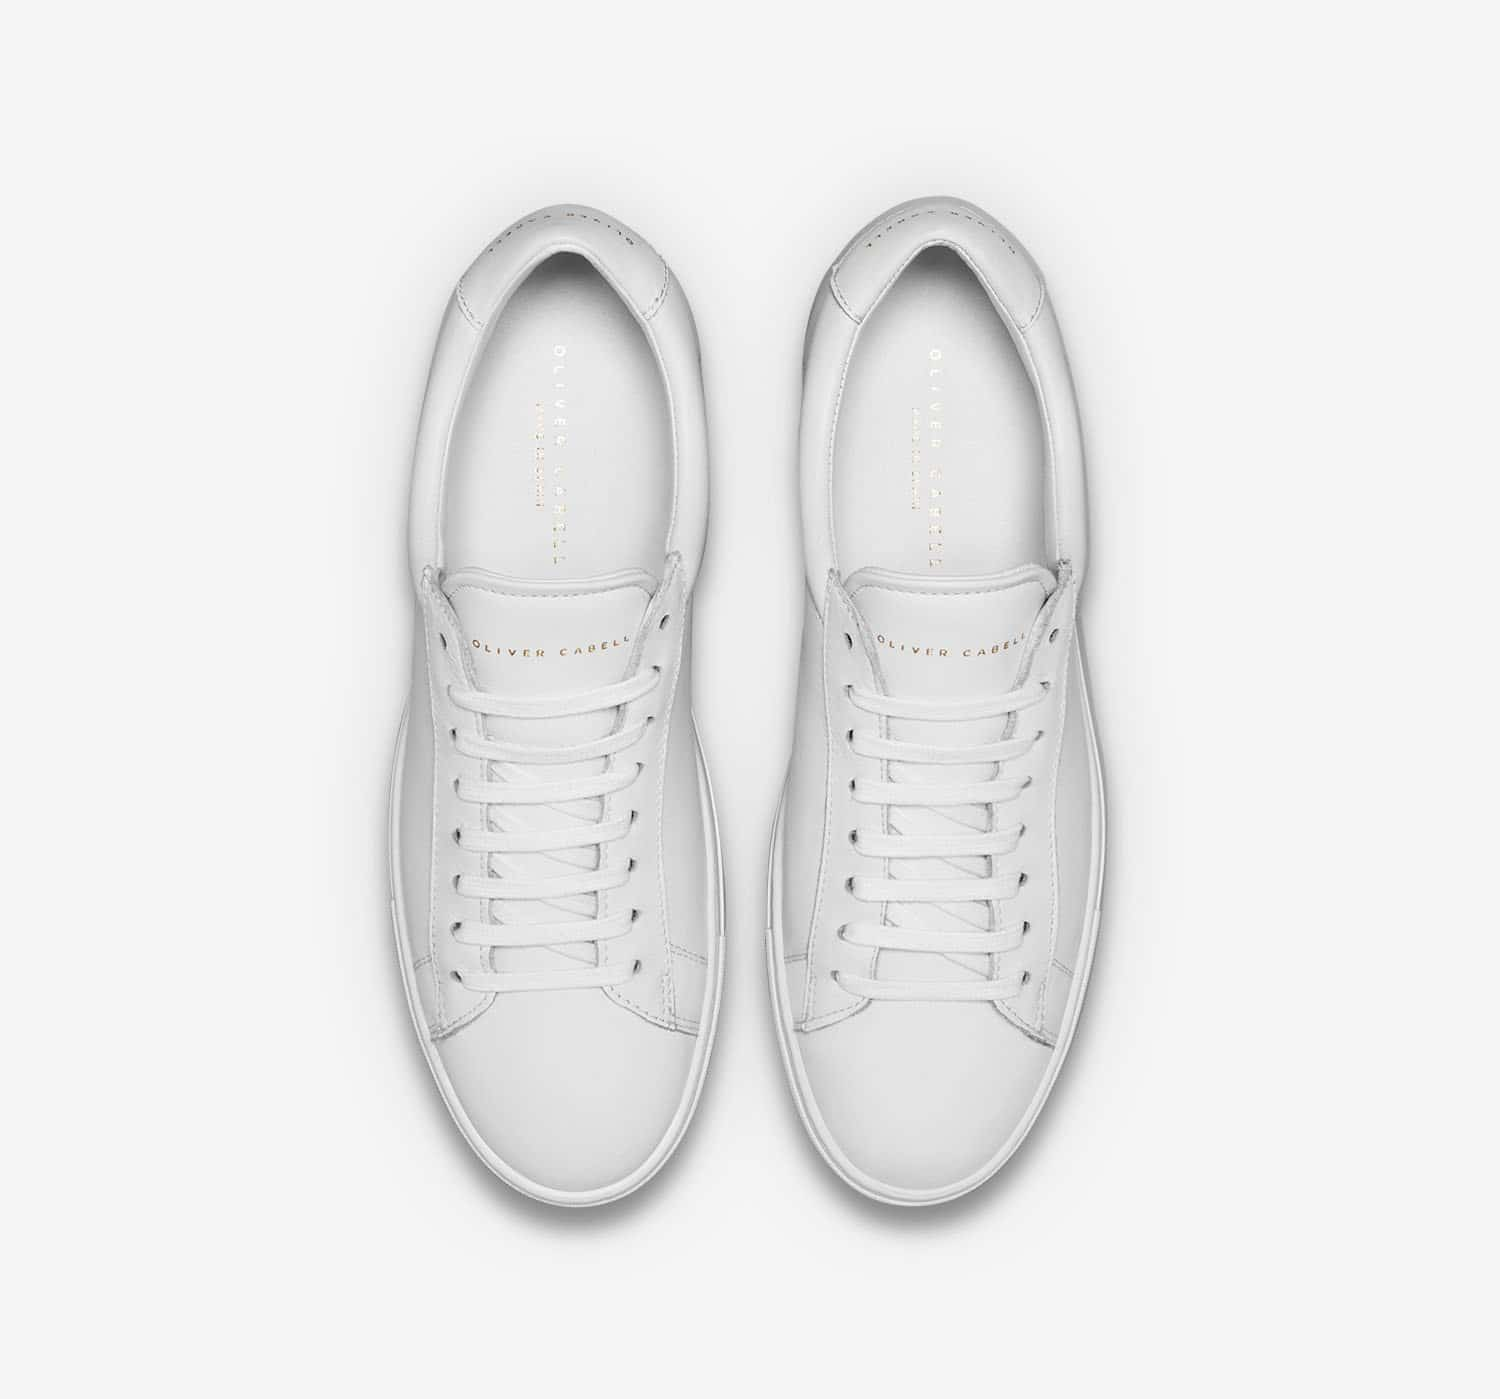 Oliver Cabell Low 1 white top down